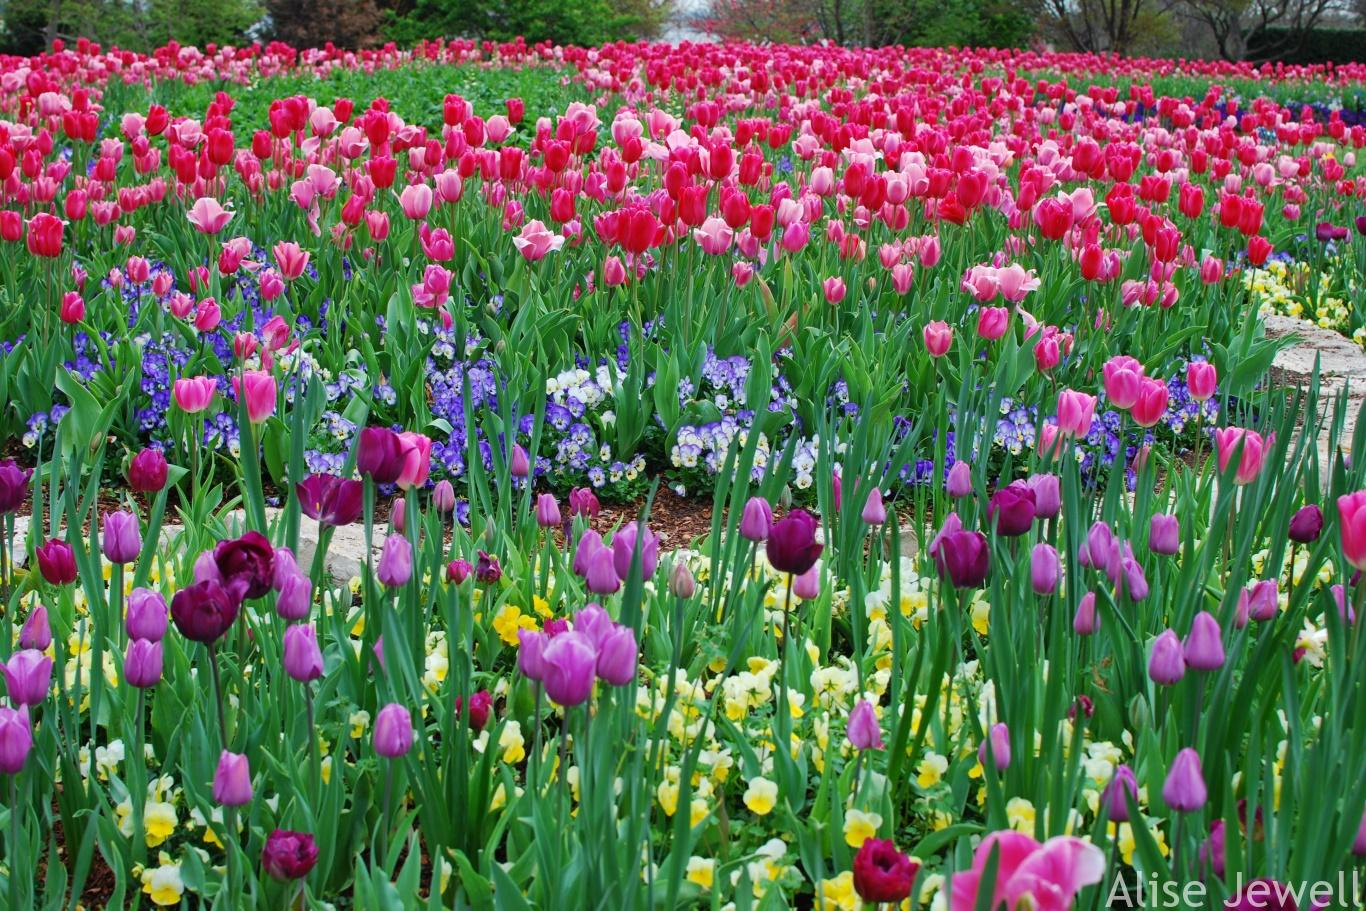 Tons of Tulips at the Dallas Arboretum